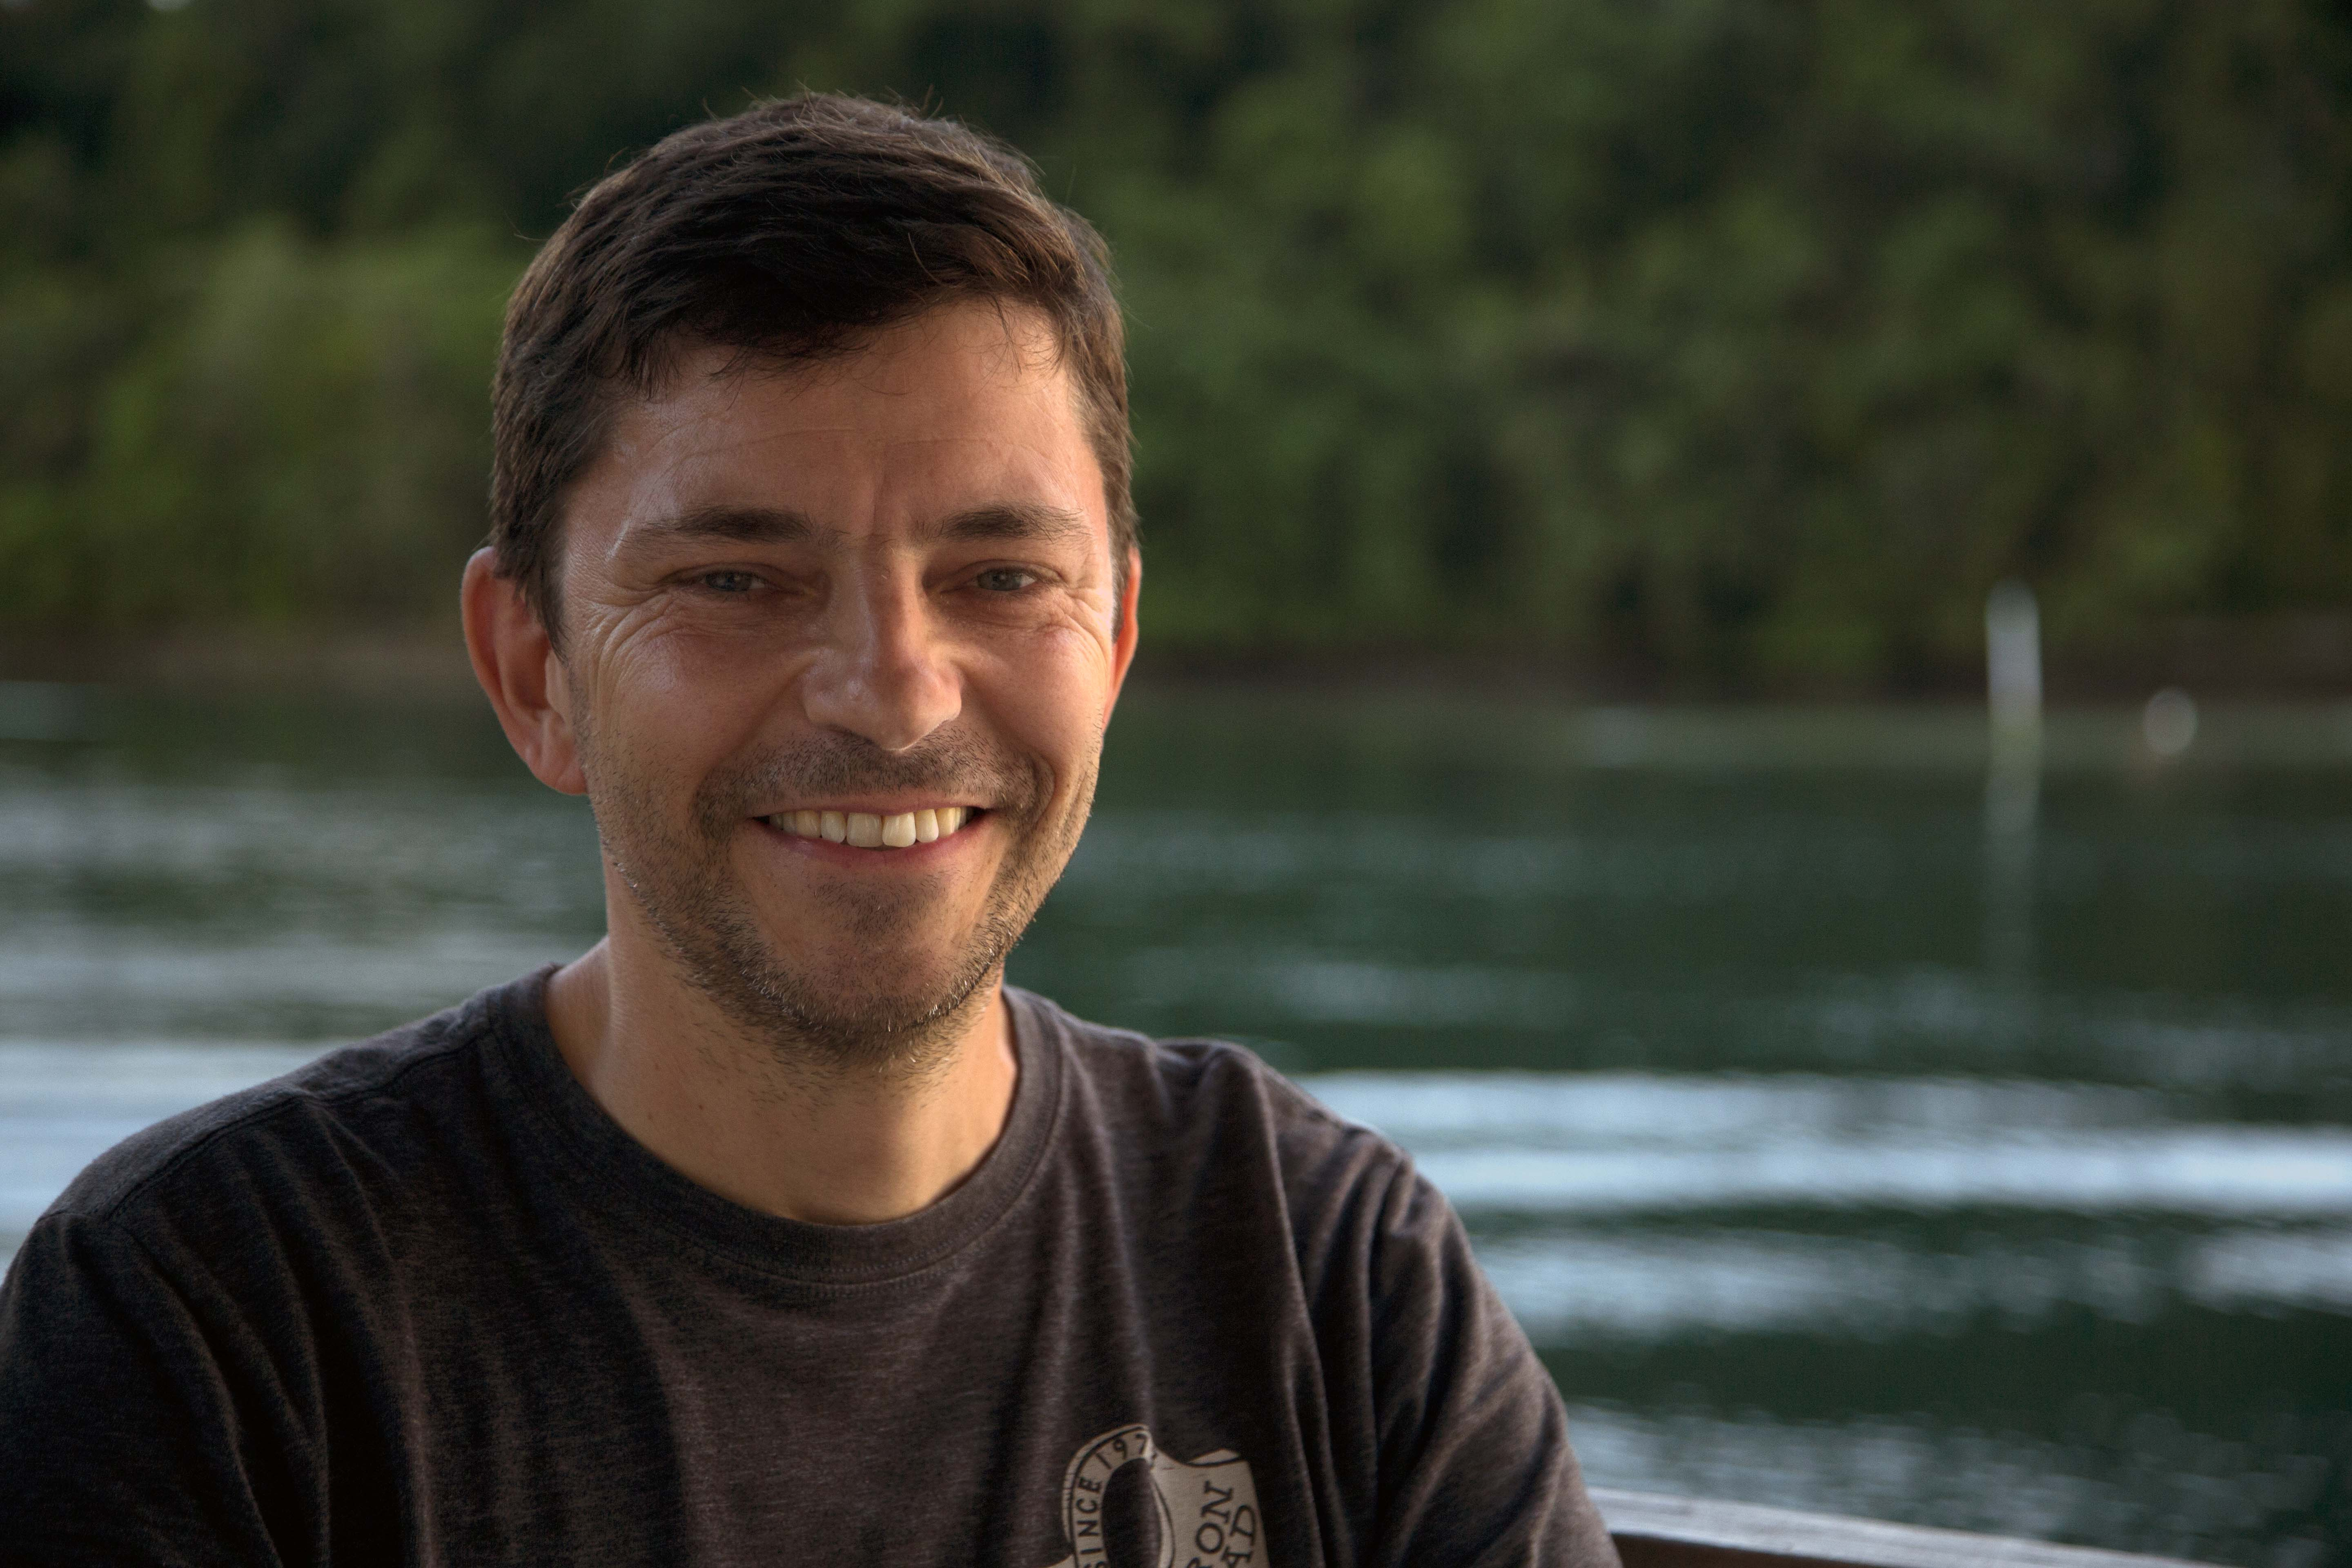 Placing heat tolerant corals in reefs won't save them indefinitely but only buy us more time, says Dr James Guest. Image credit - Dr James Guest